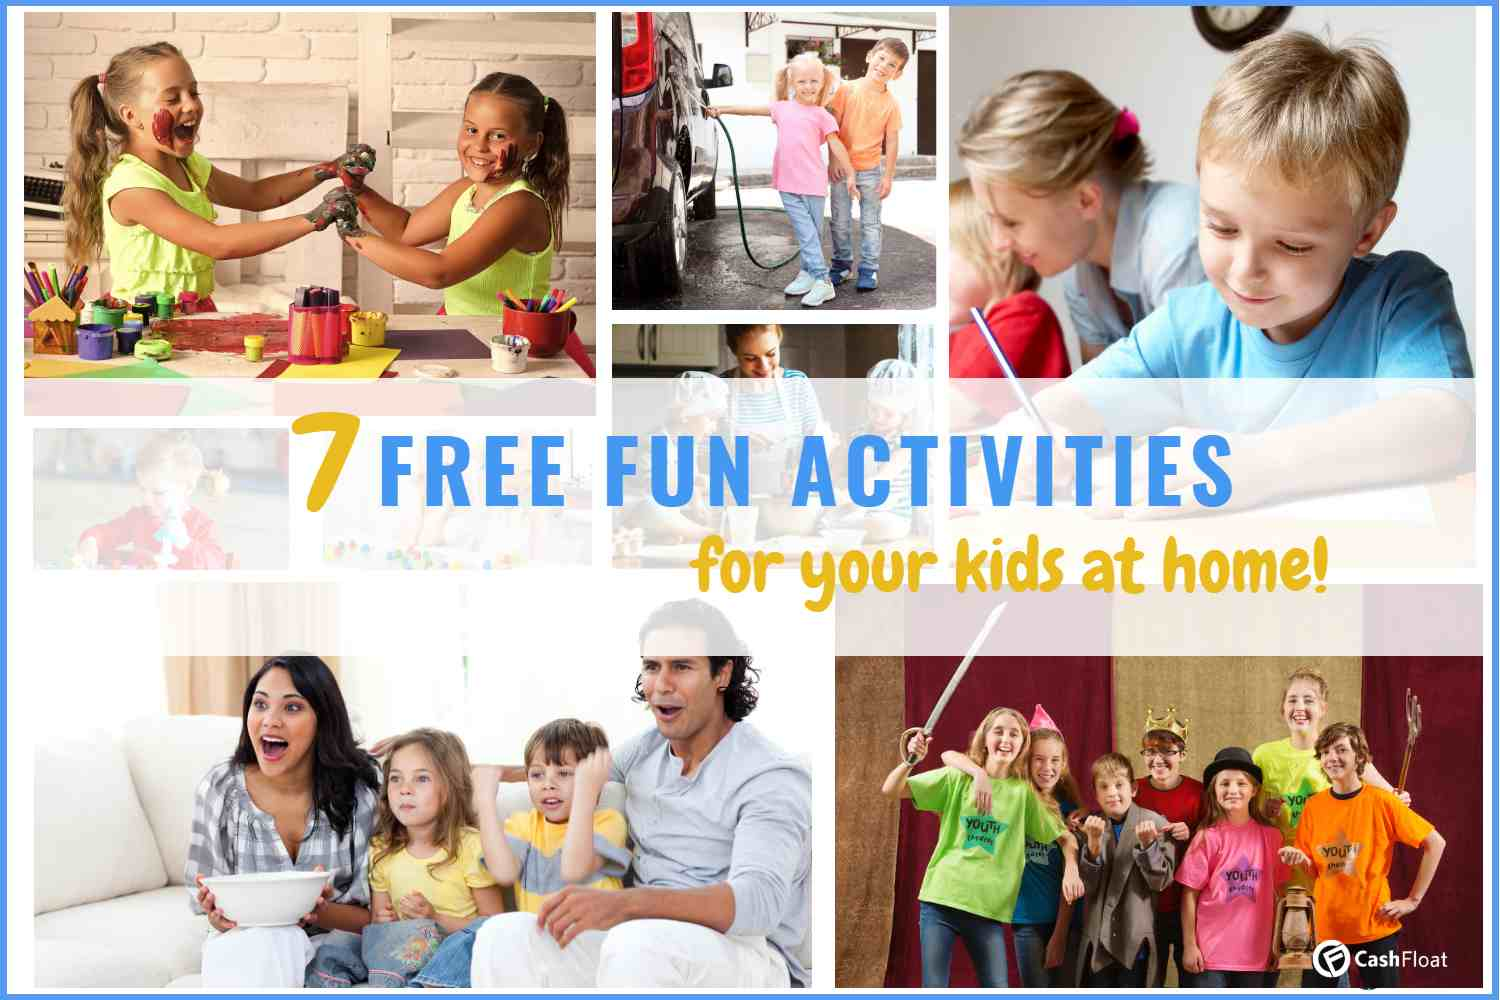 7 fun free activities for kids -Cashfloat